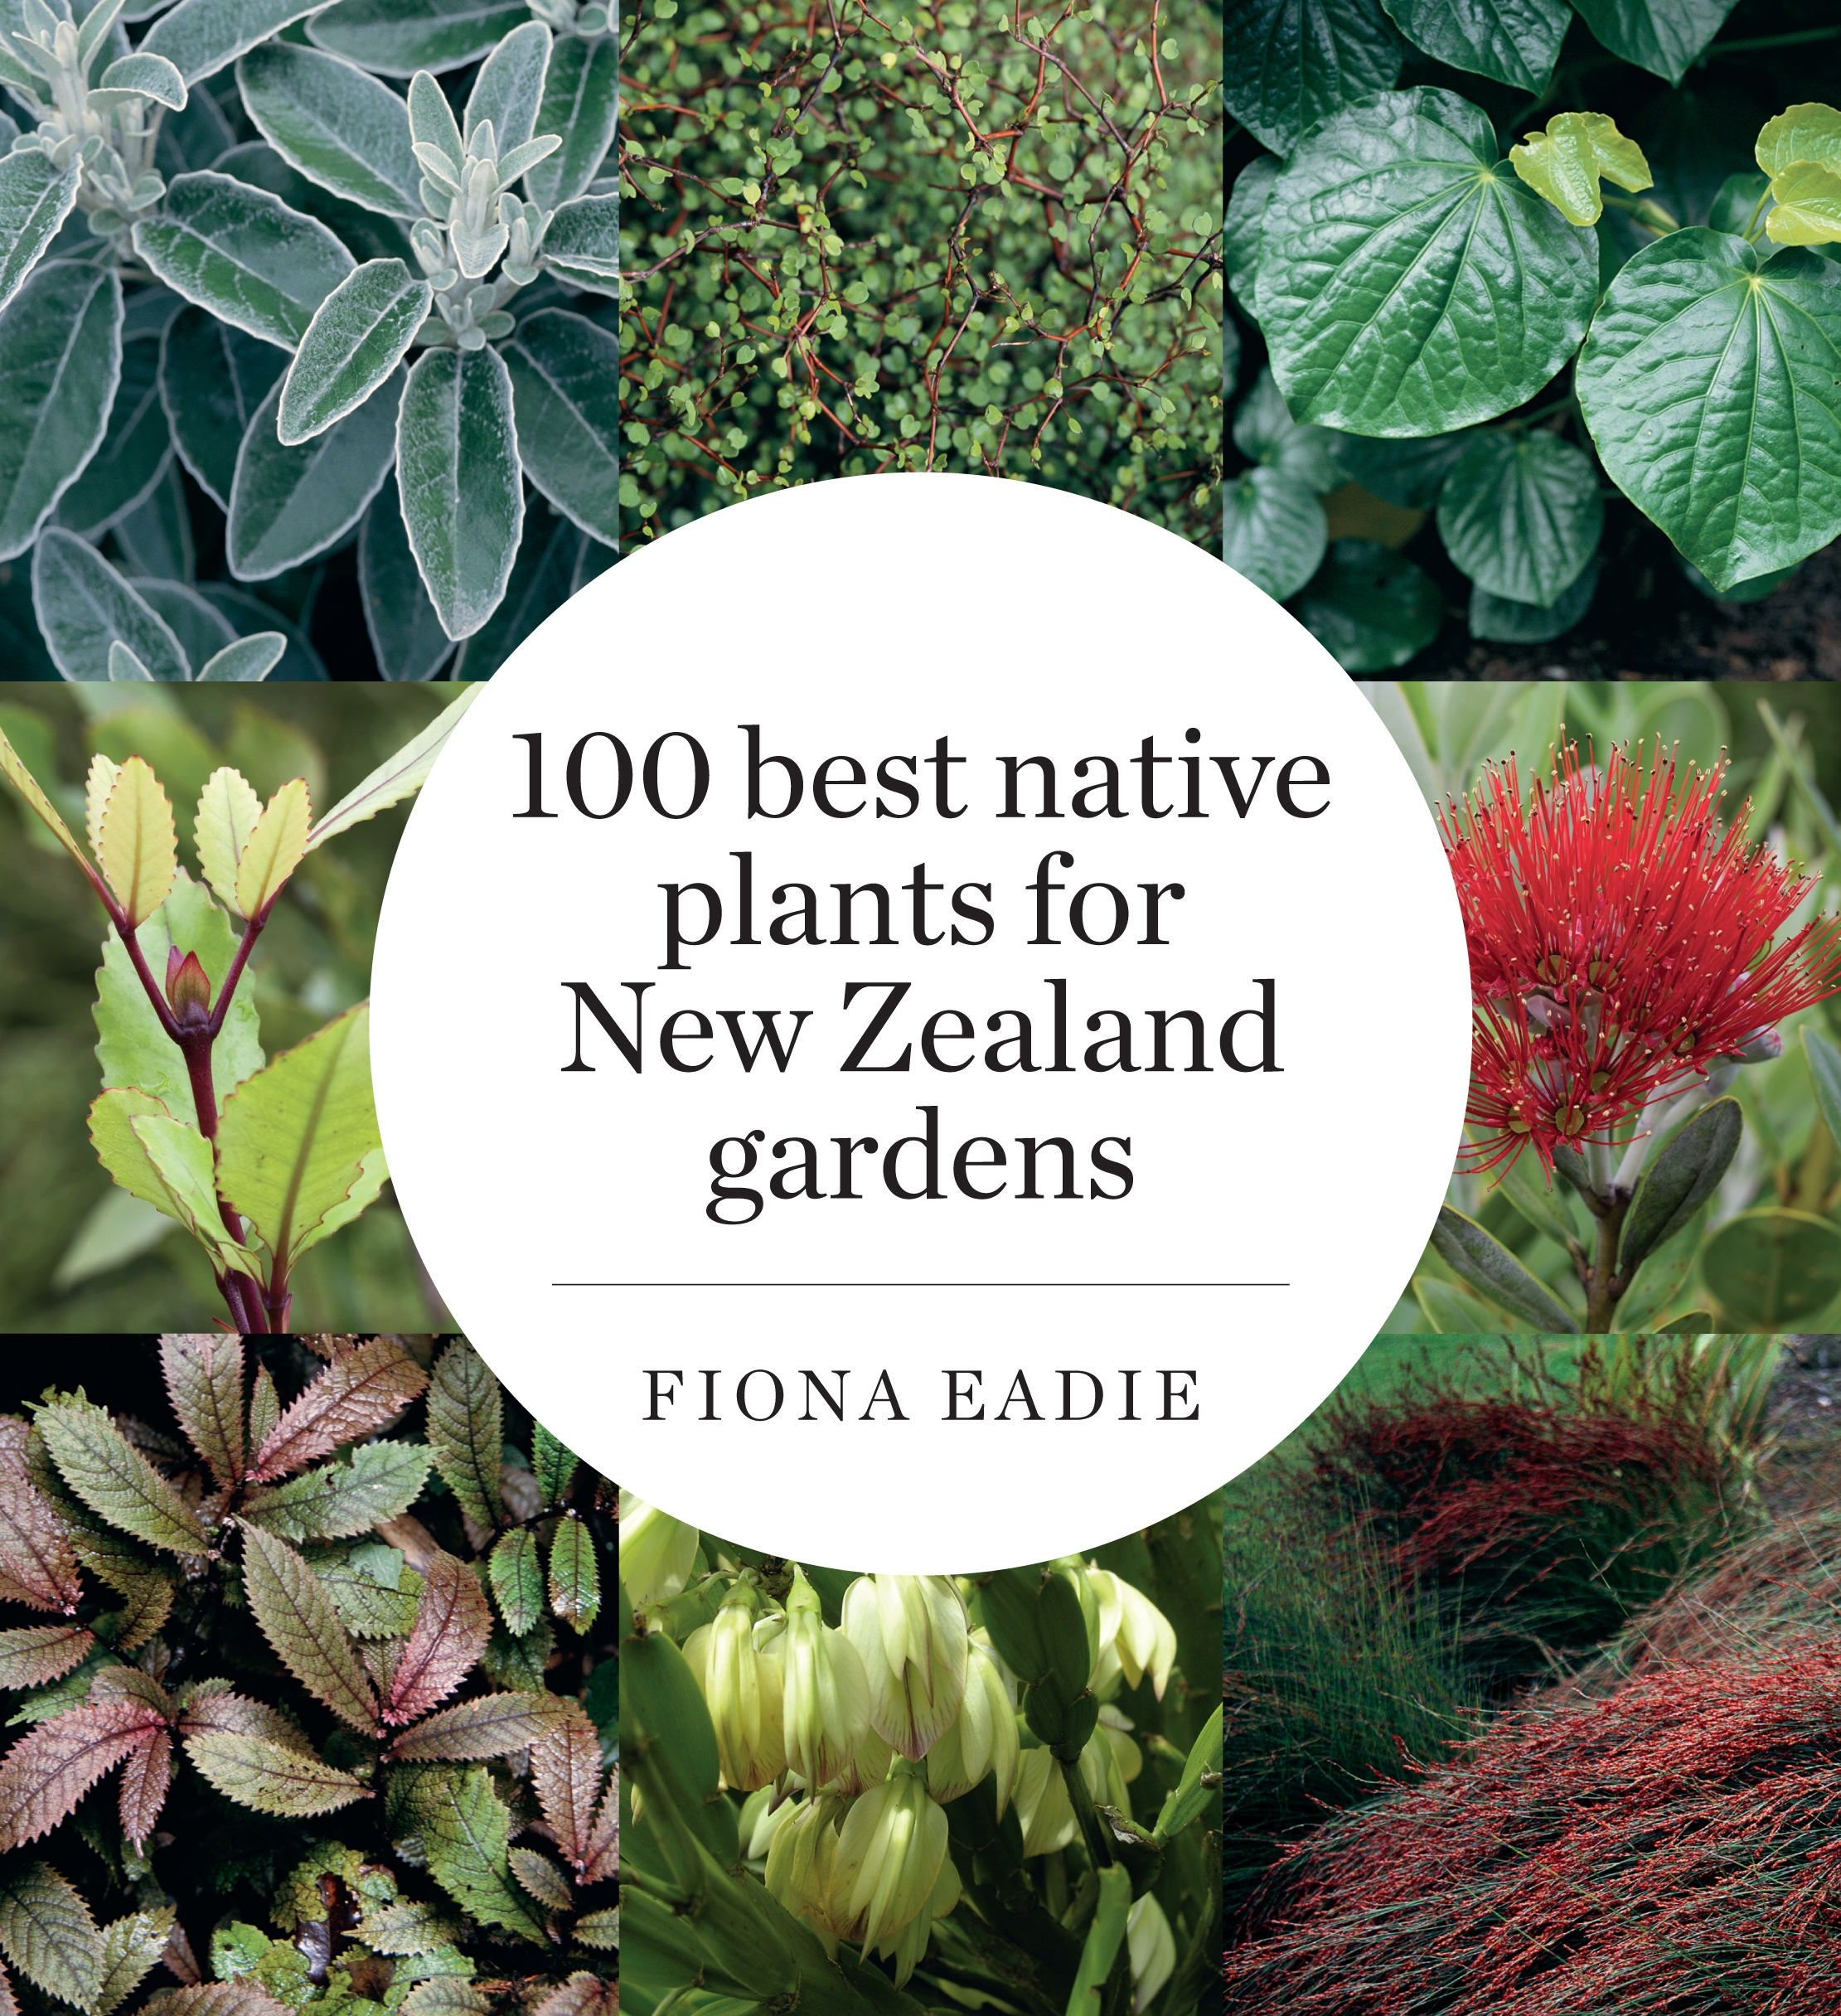 100 best native plants for new zealand gardens revised for New garden plants